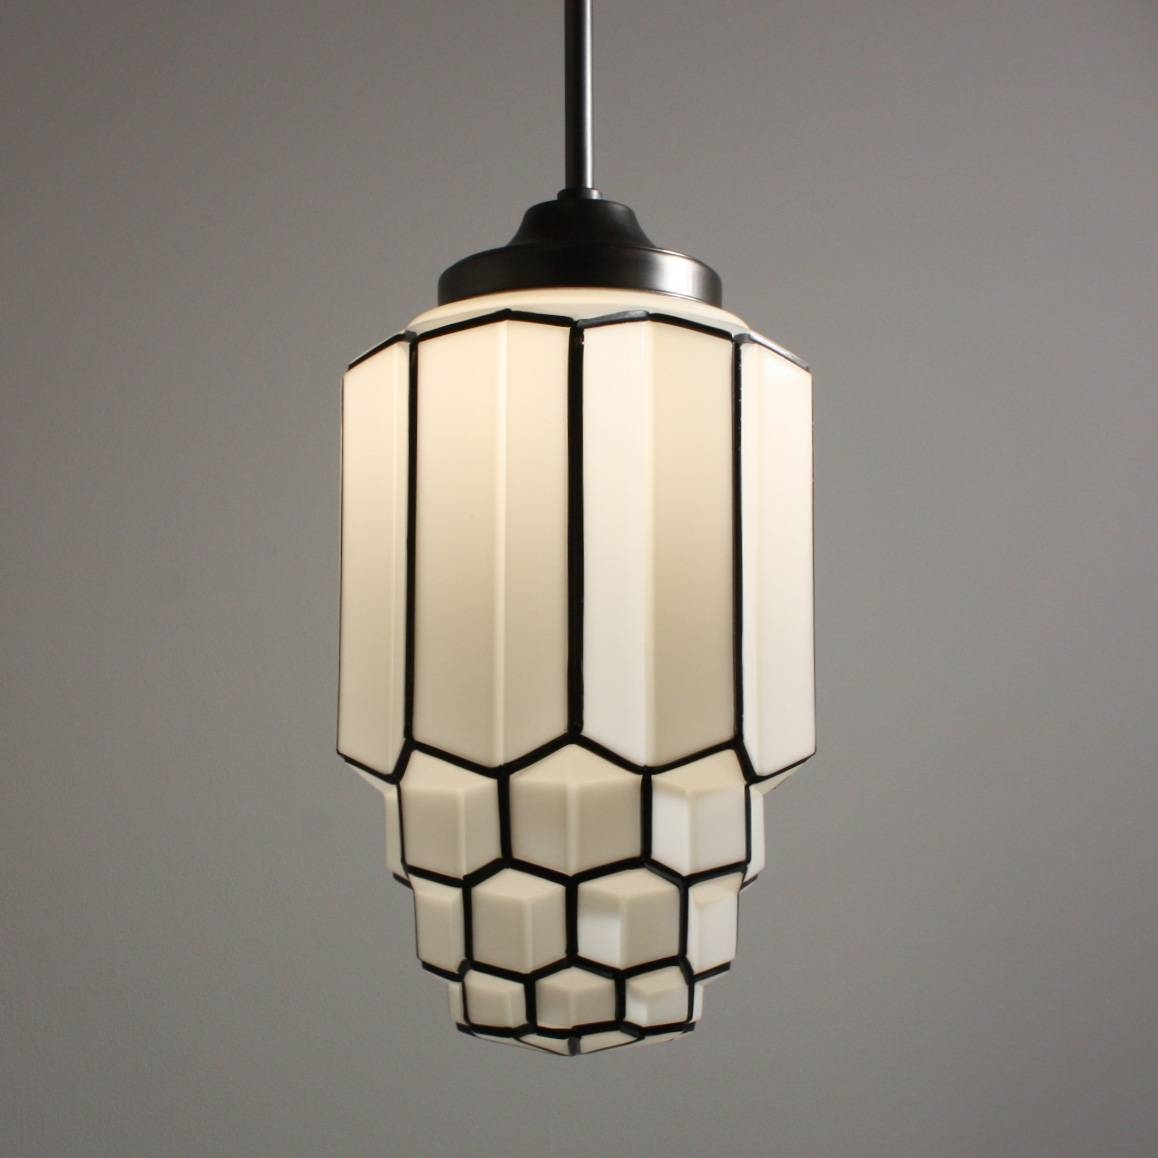 Pleasant Art Deco Pendant Lights Perfect Designing Pendant in Art Nouveau Pendant Lights (Image 13 of 15)